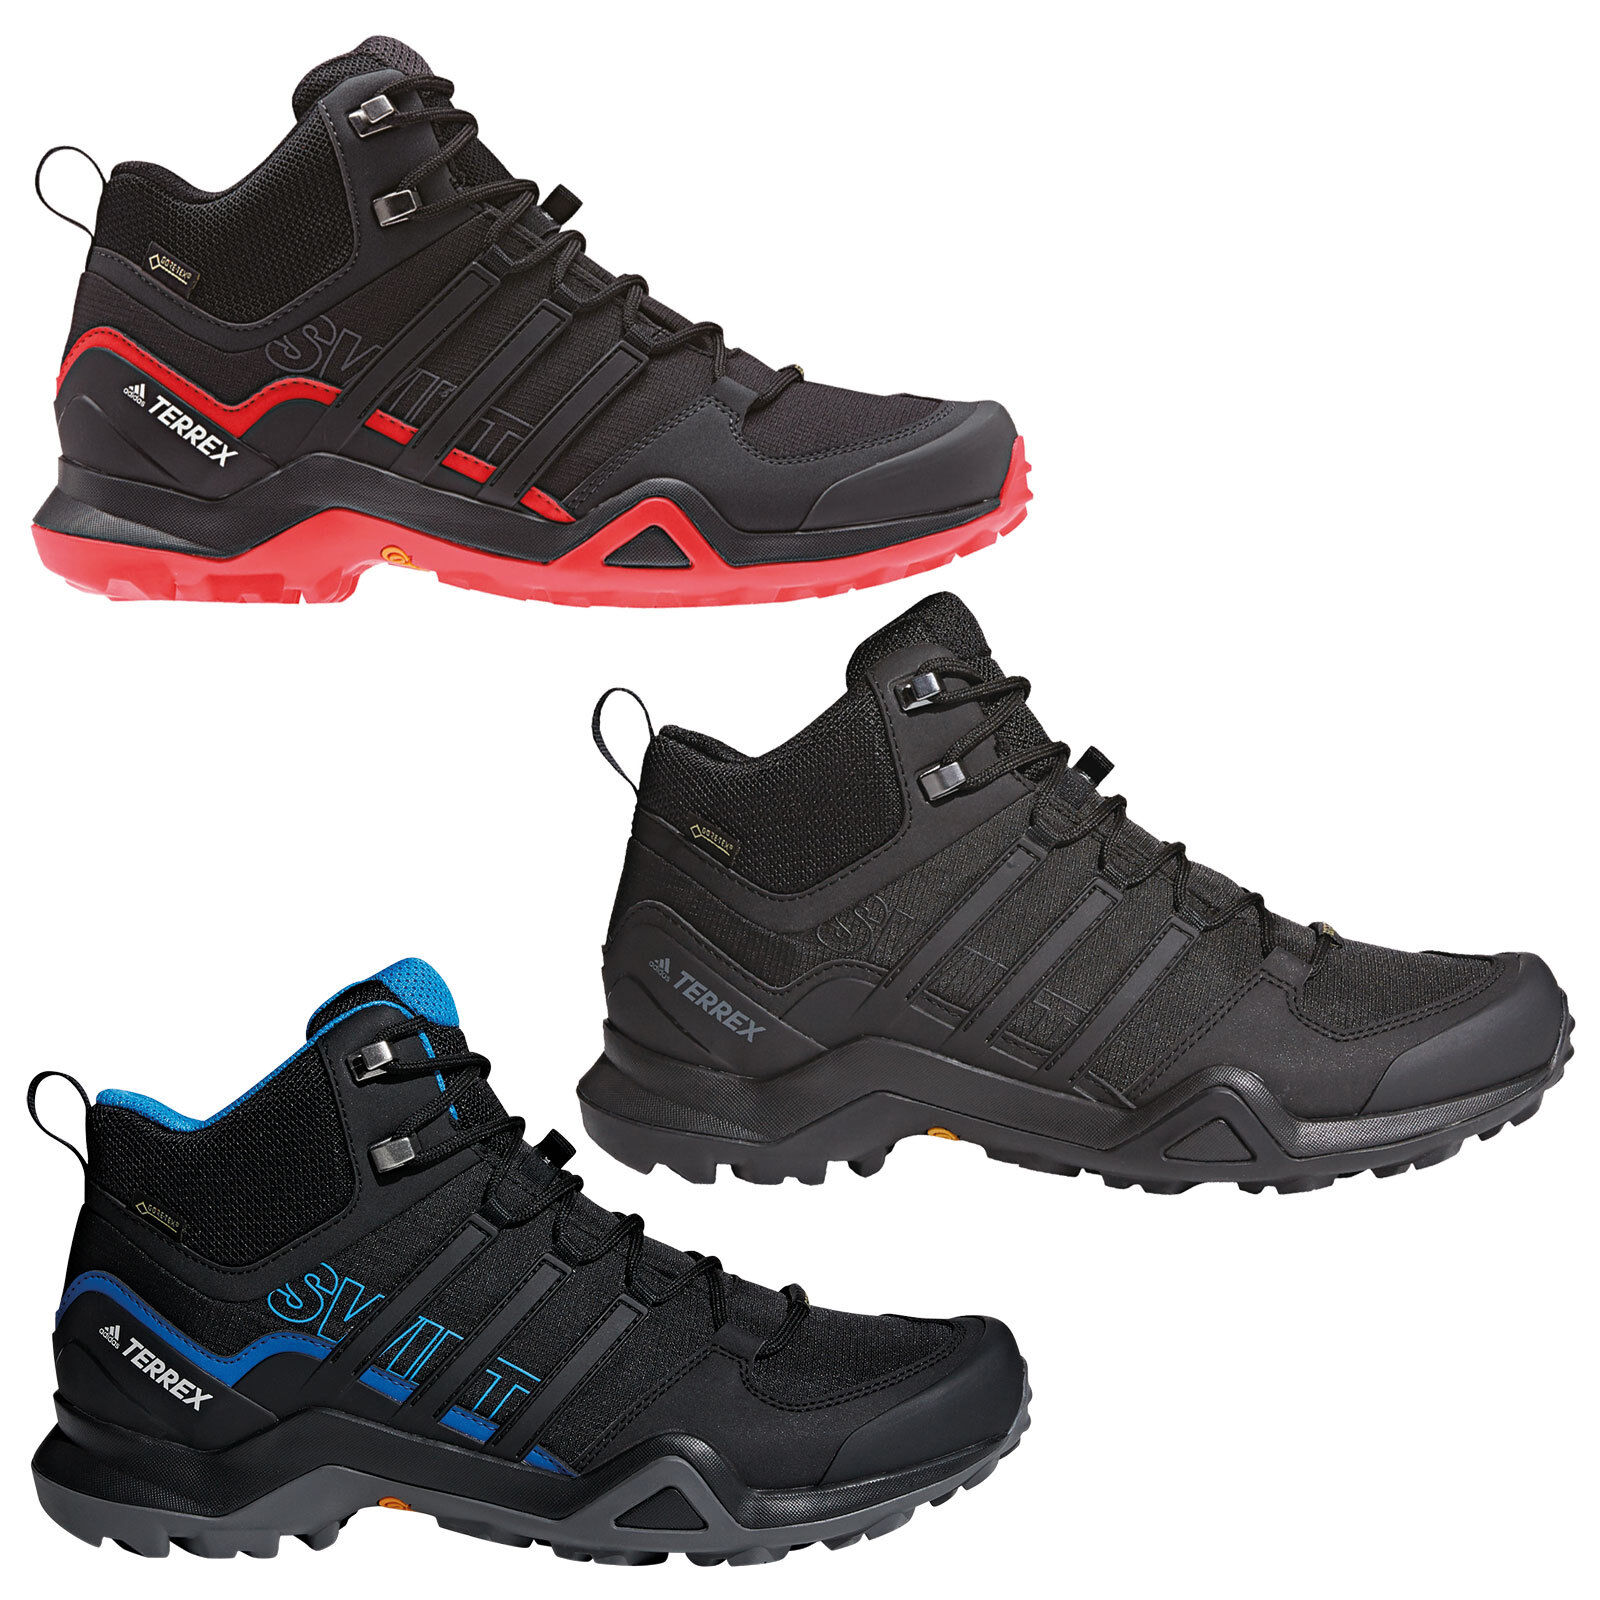 Adidas Performance Terrex Swift R2 Goretex zapatos Trekking hombres zapatos Casual